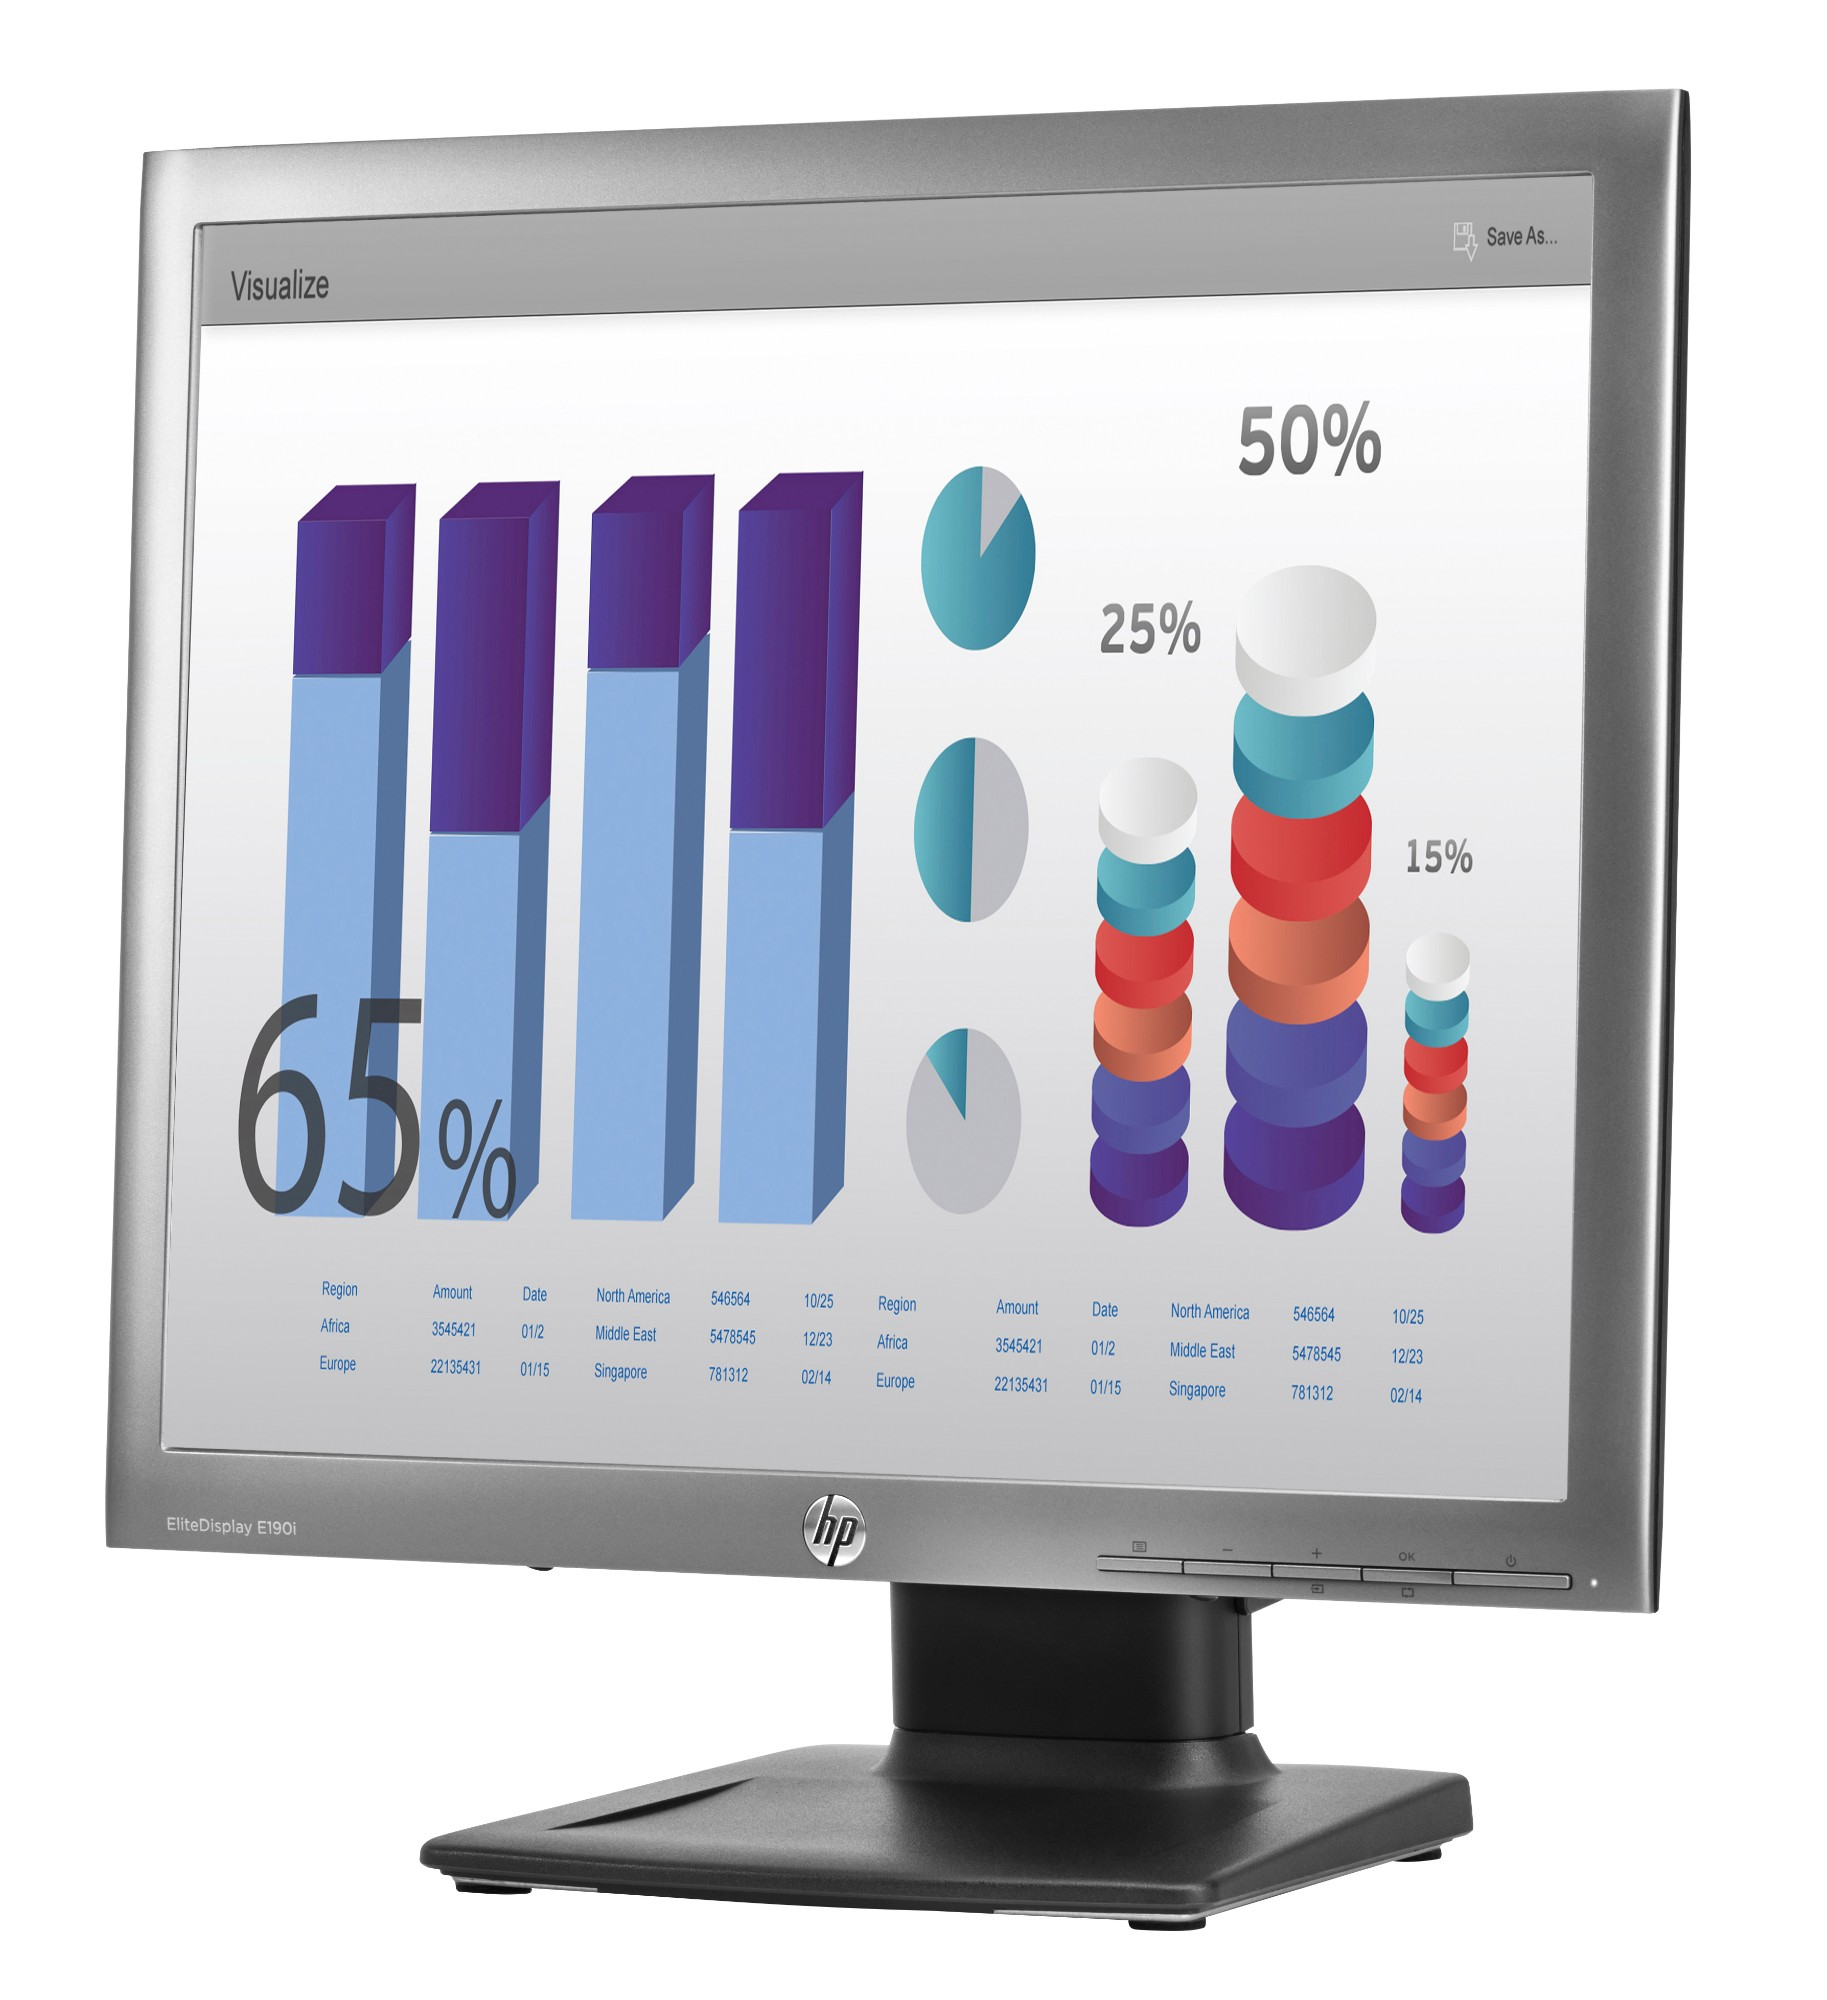 LED Monitor - EliteDisplay E190i - 18.9in - 1280x1024 (SXGA)